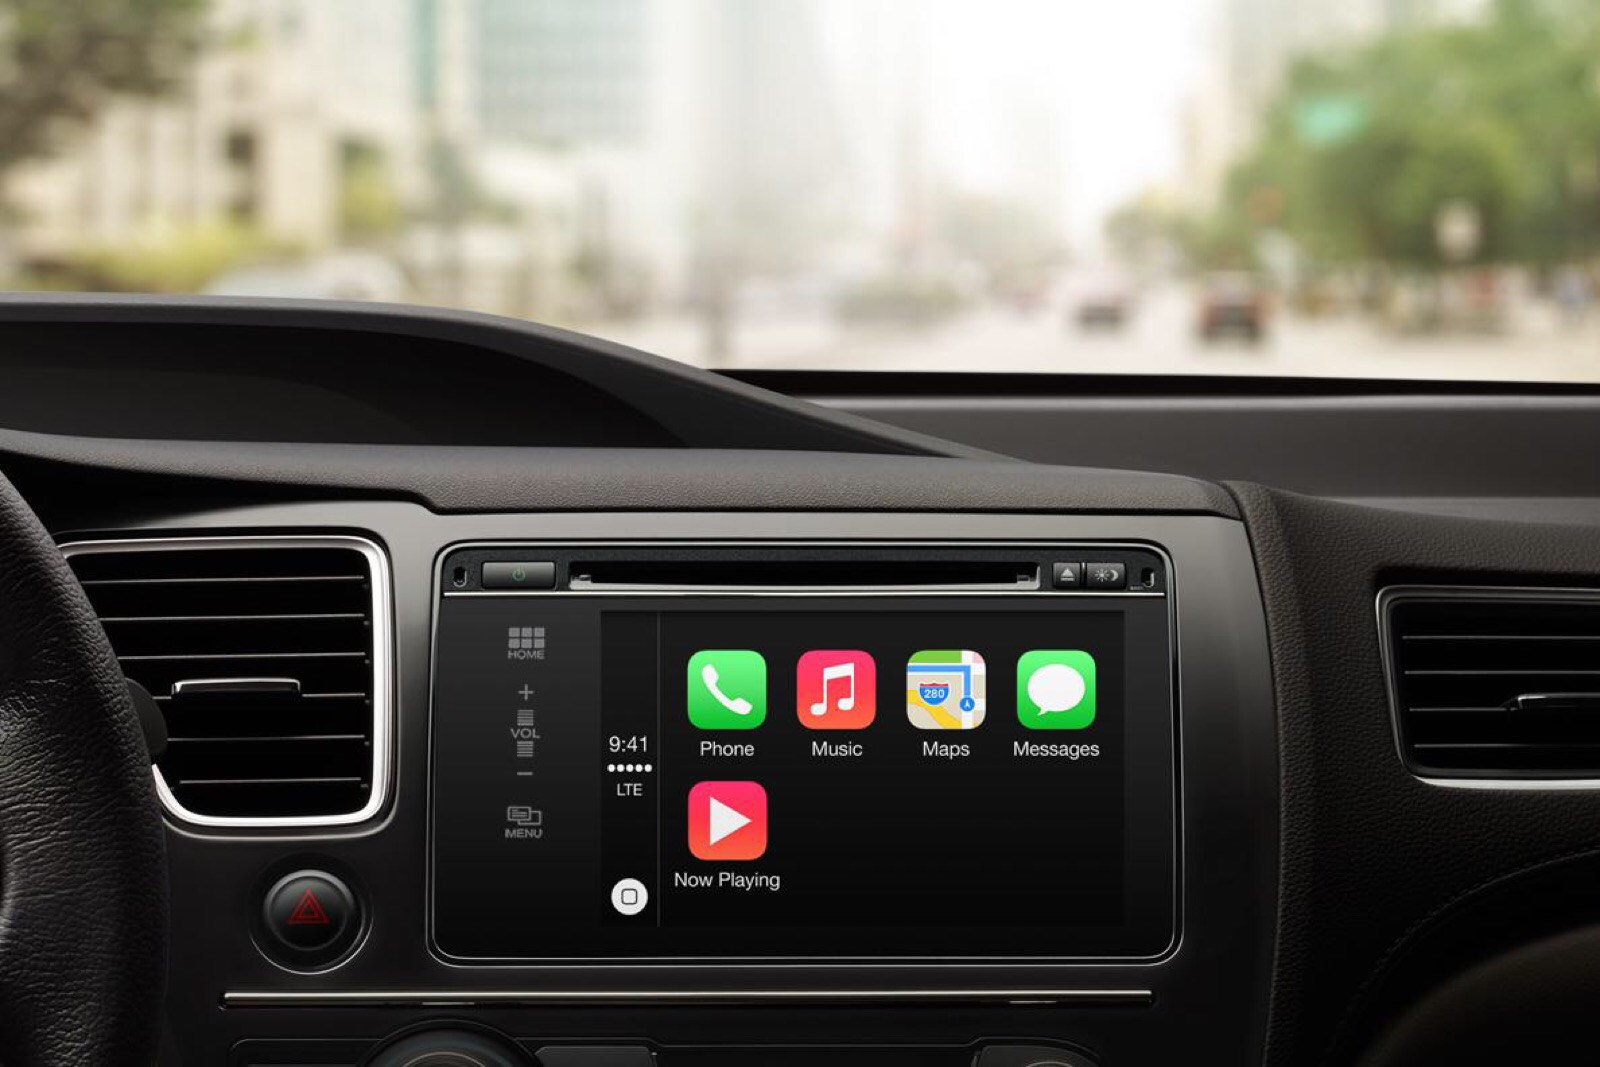 BMW Owners Suffer ConnectedDrive Outage, Affects CarPlay